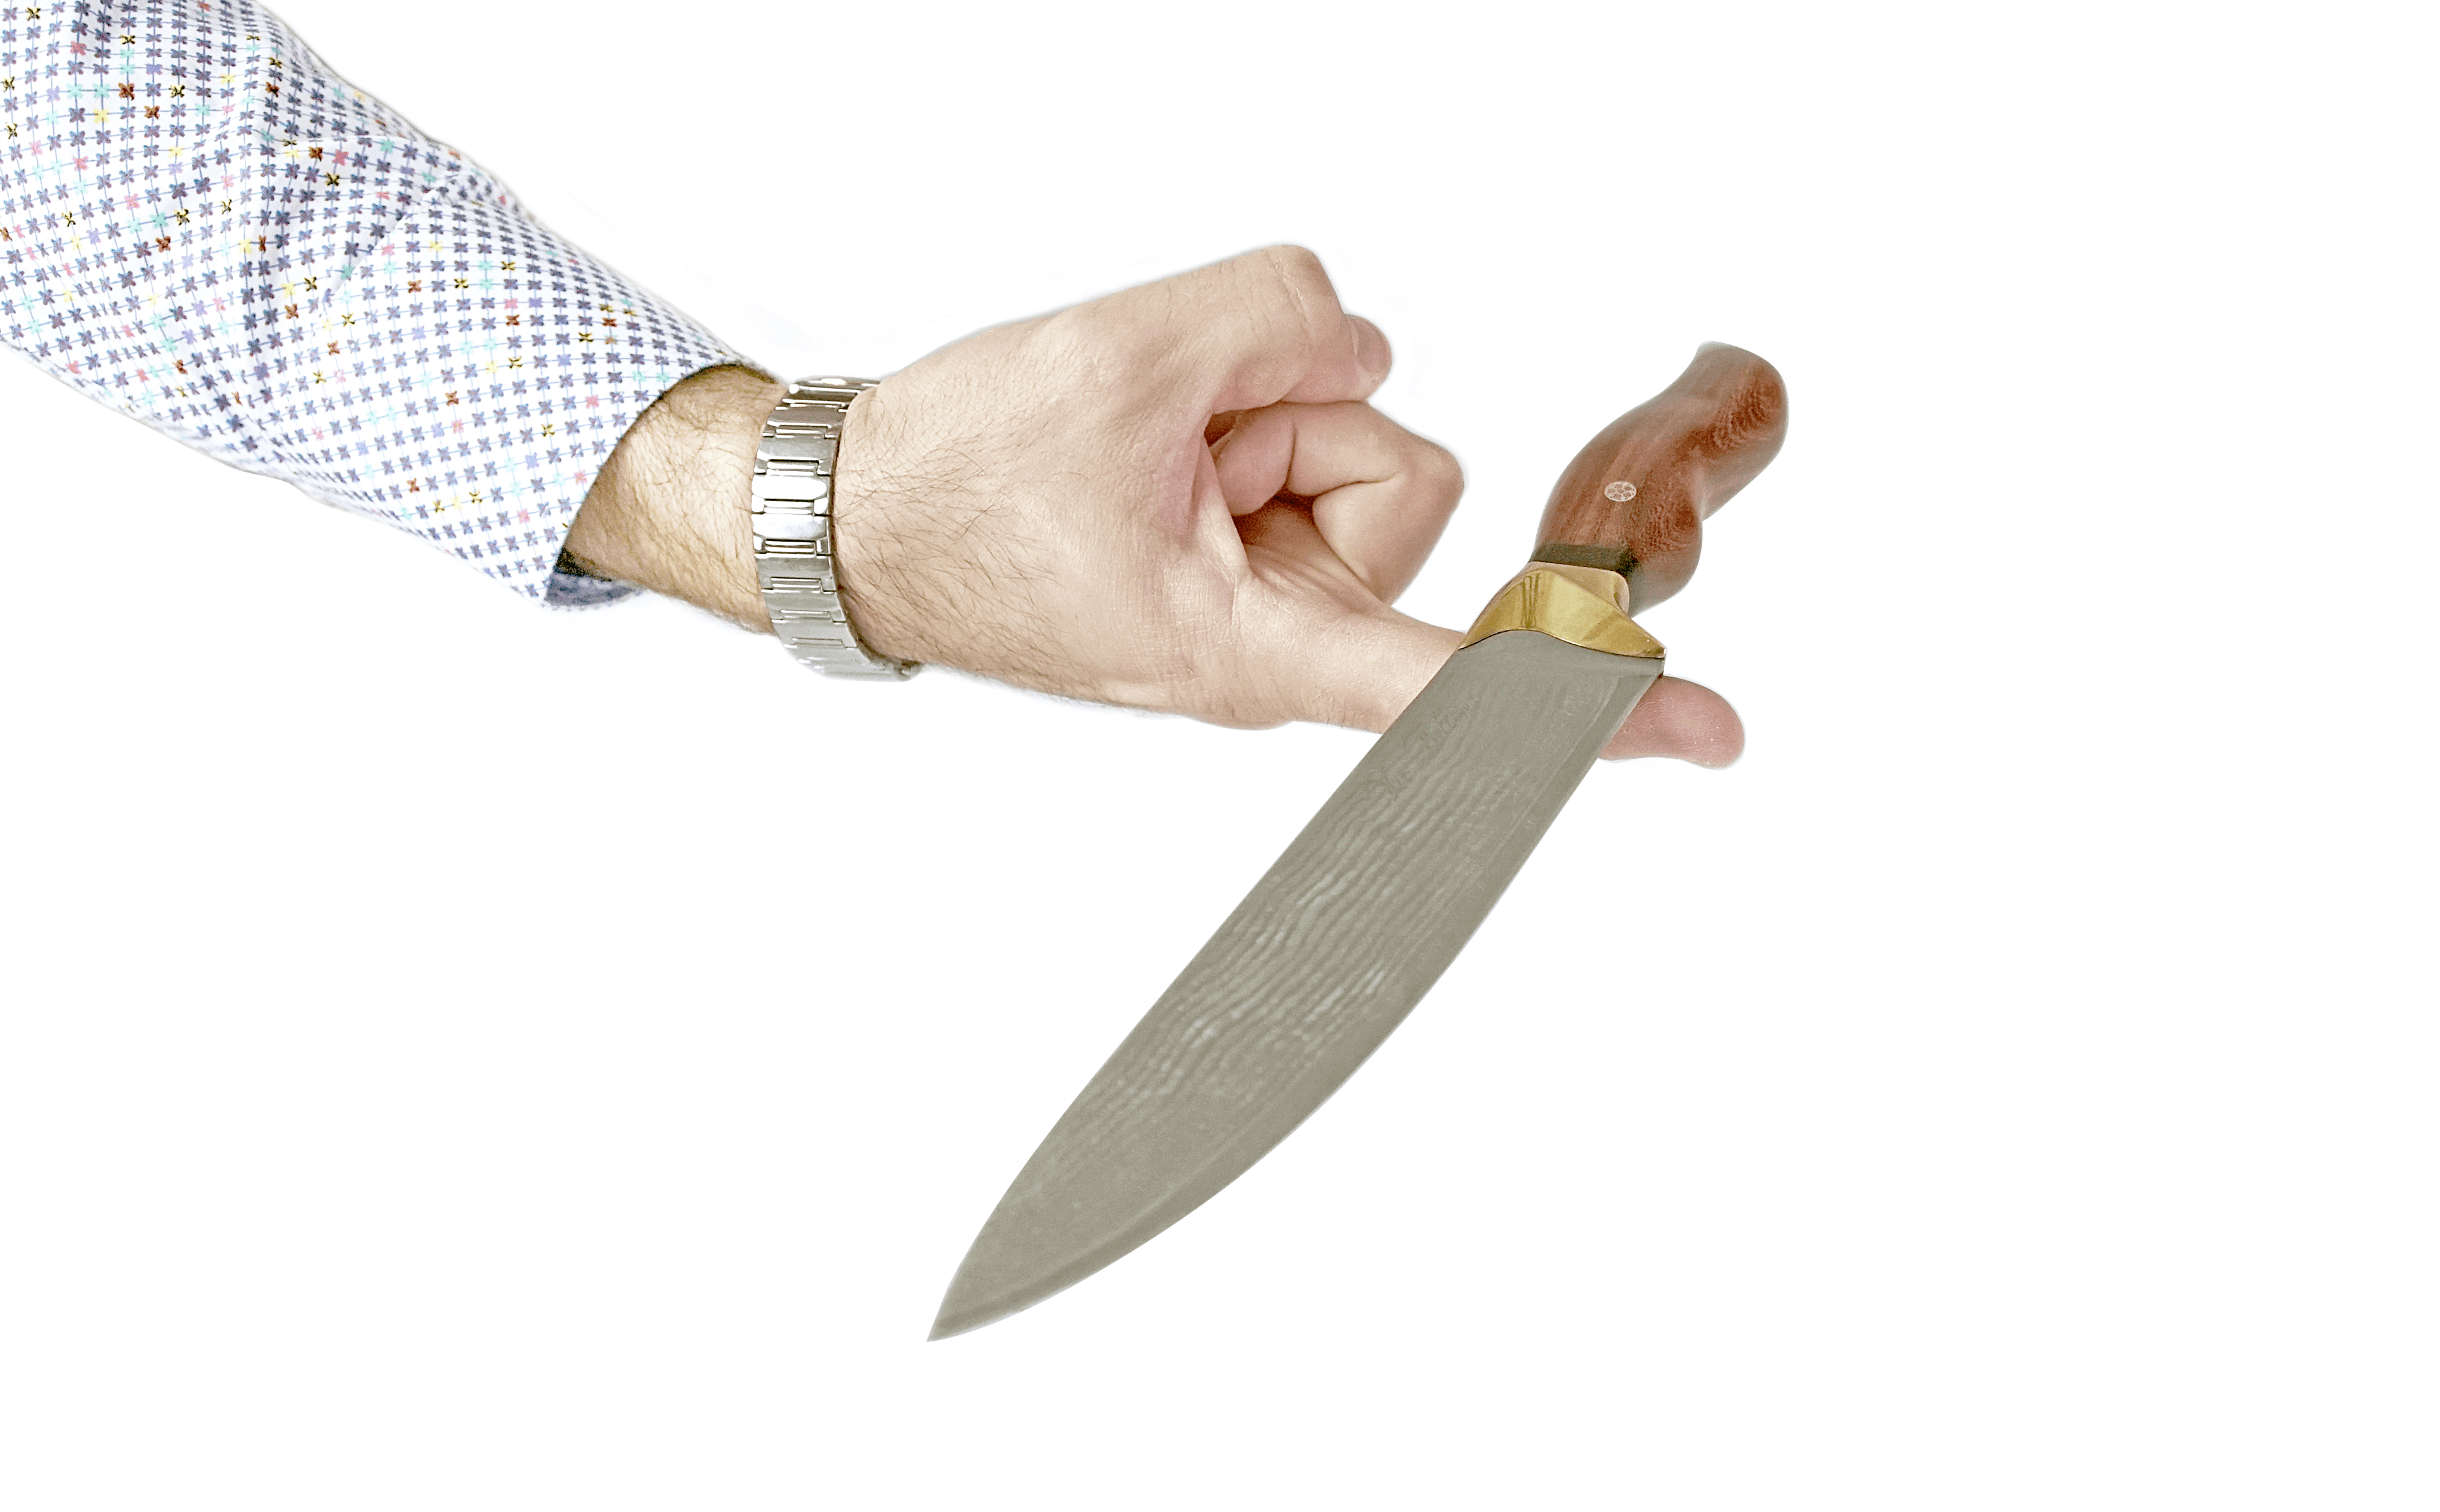 9 Things to know before buying a chef's knife